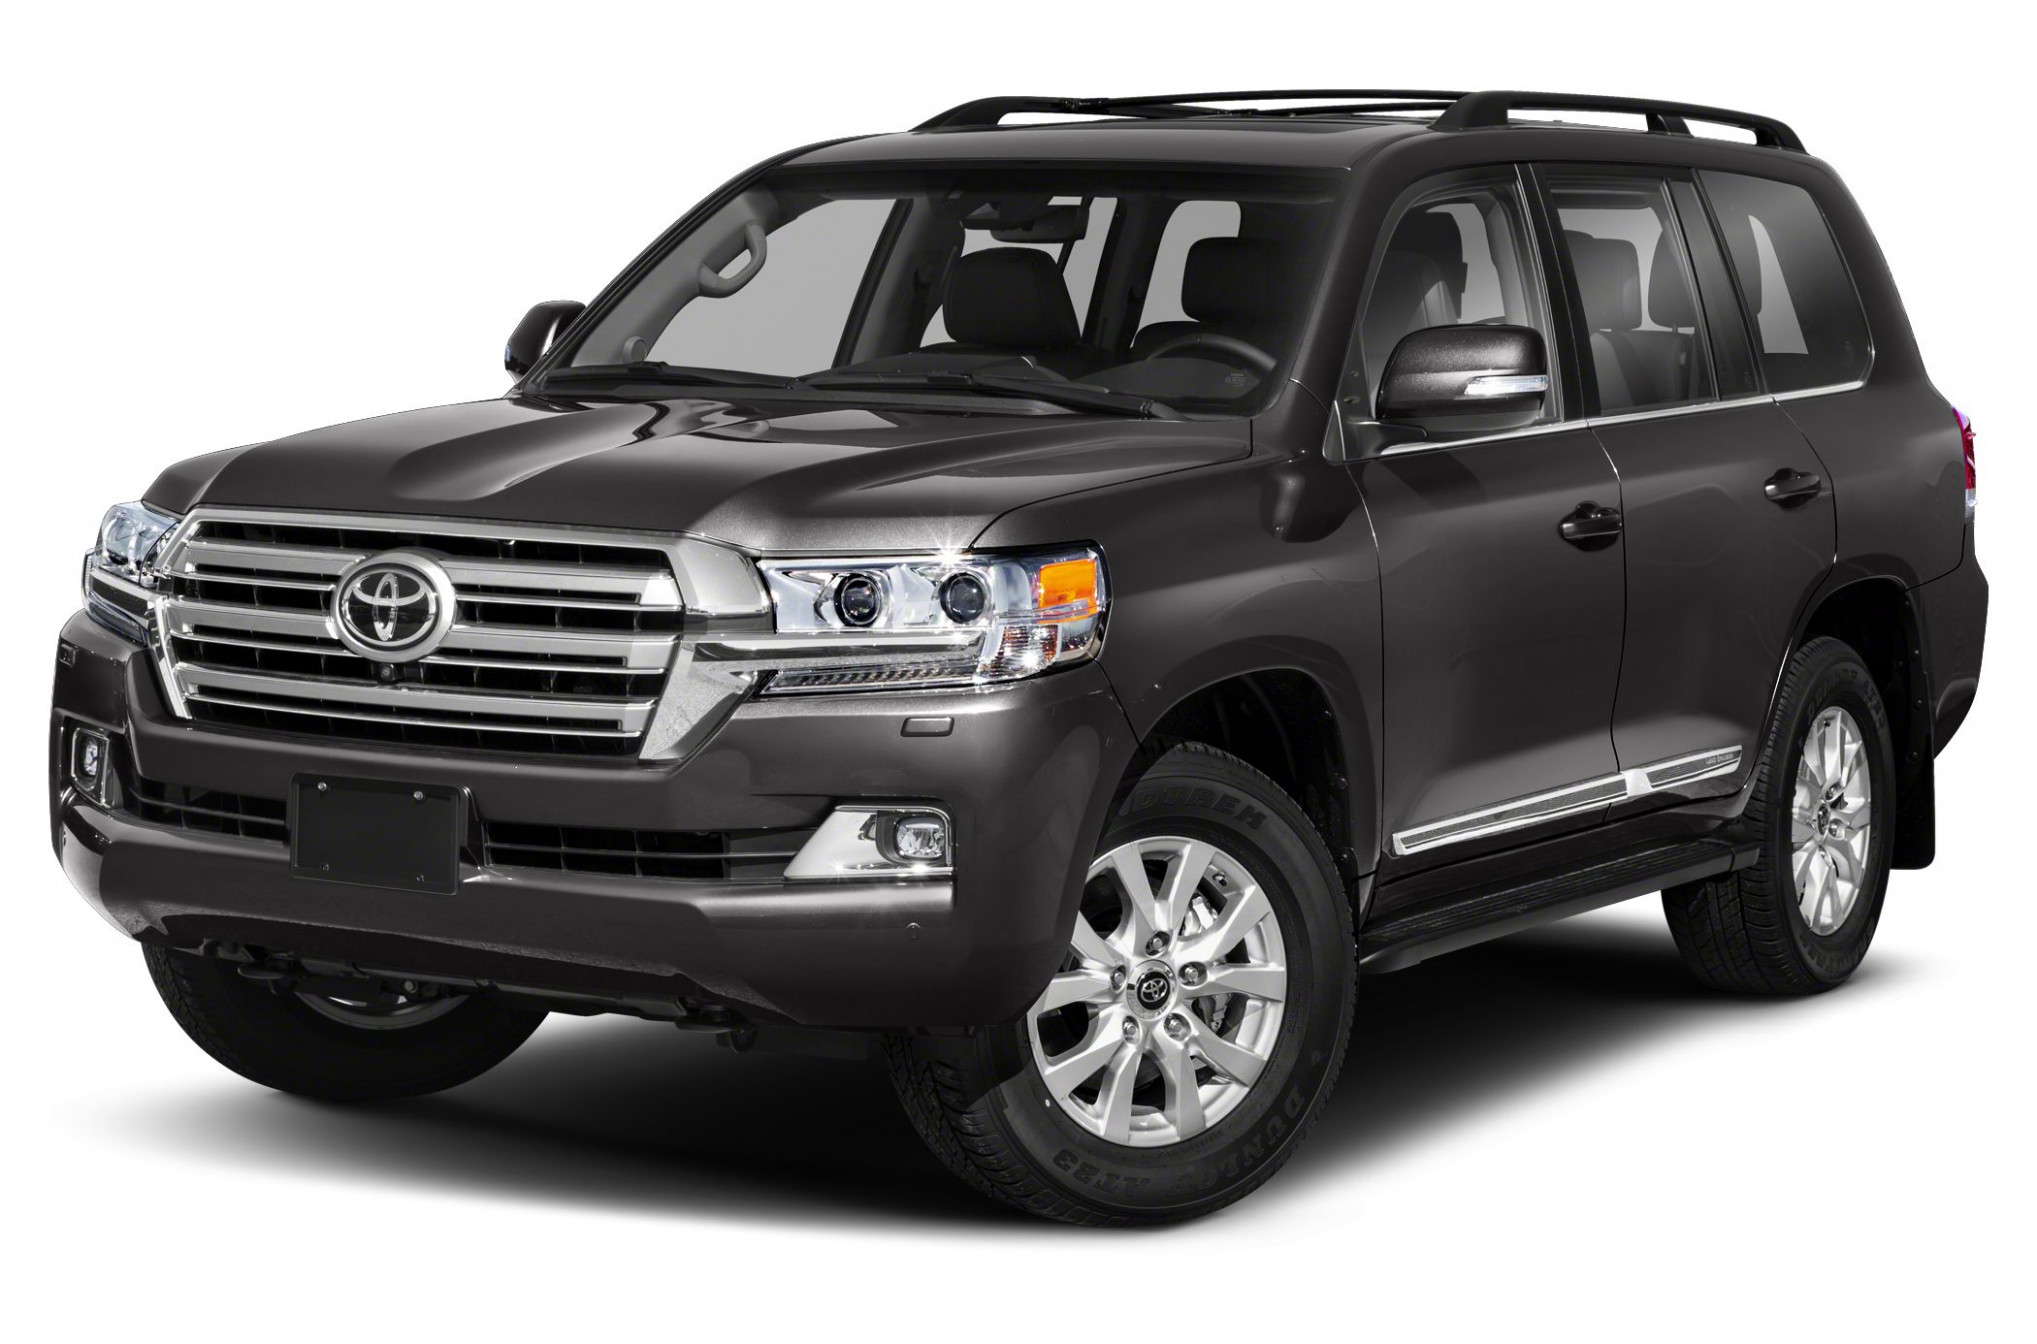 8 Toyota Land Cruiser Heritage Edition 8dr 8x8 Specs and Prices - 2020 toyota land cruiser towing capacity